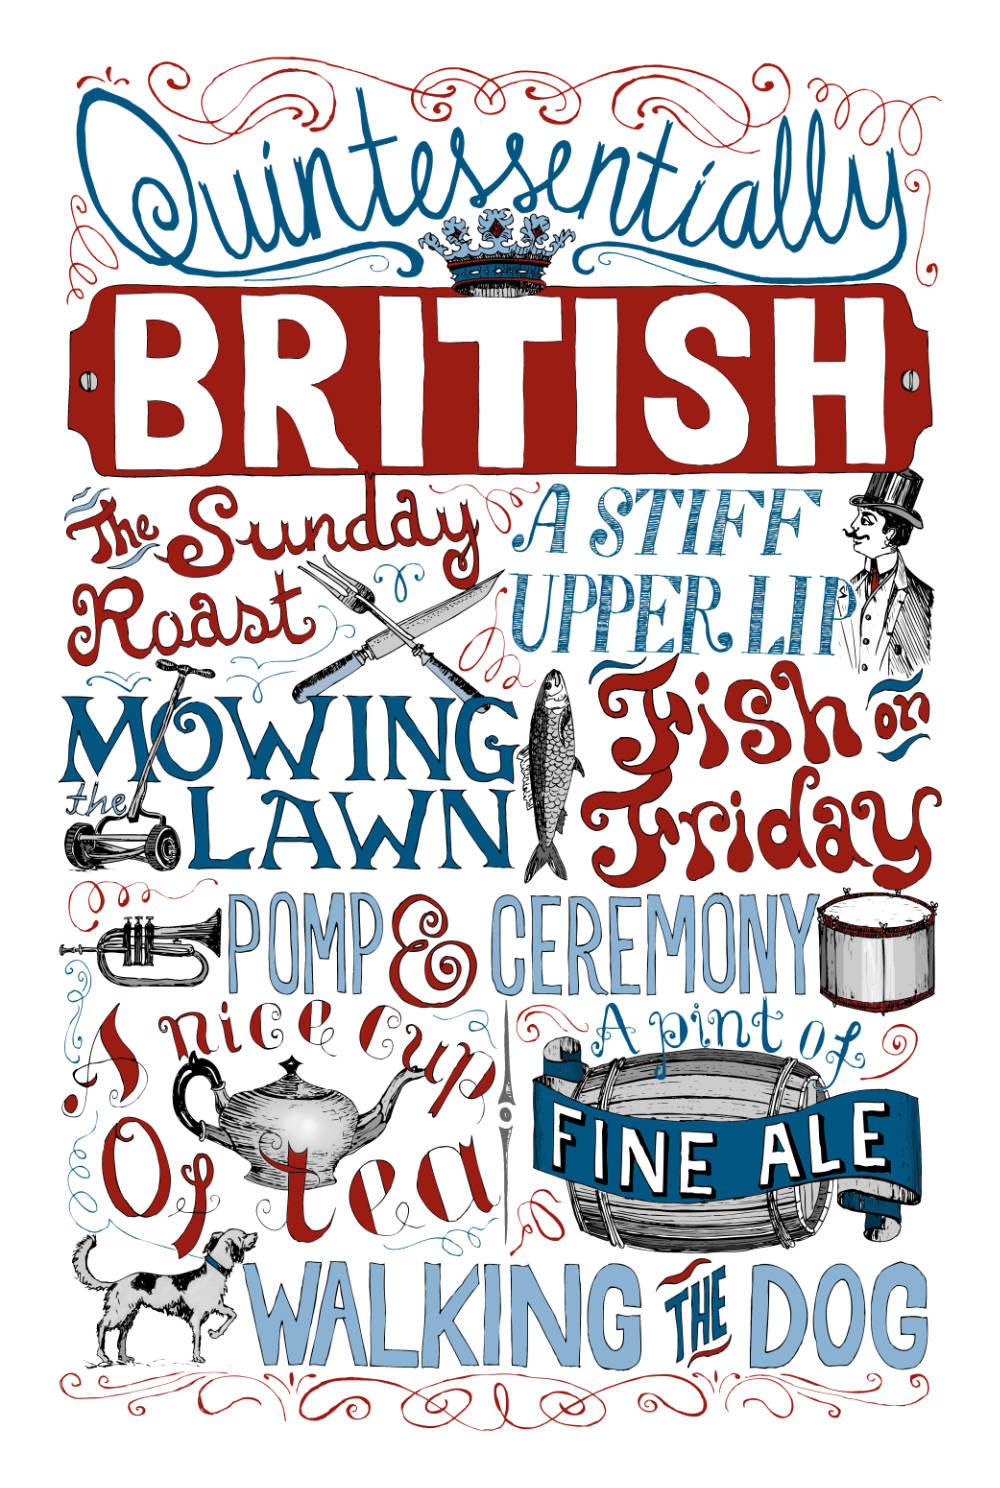 British Illustration Hand Lettered Art Print | The Enlightened Hound